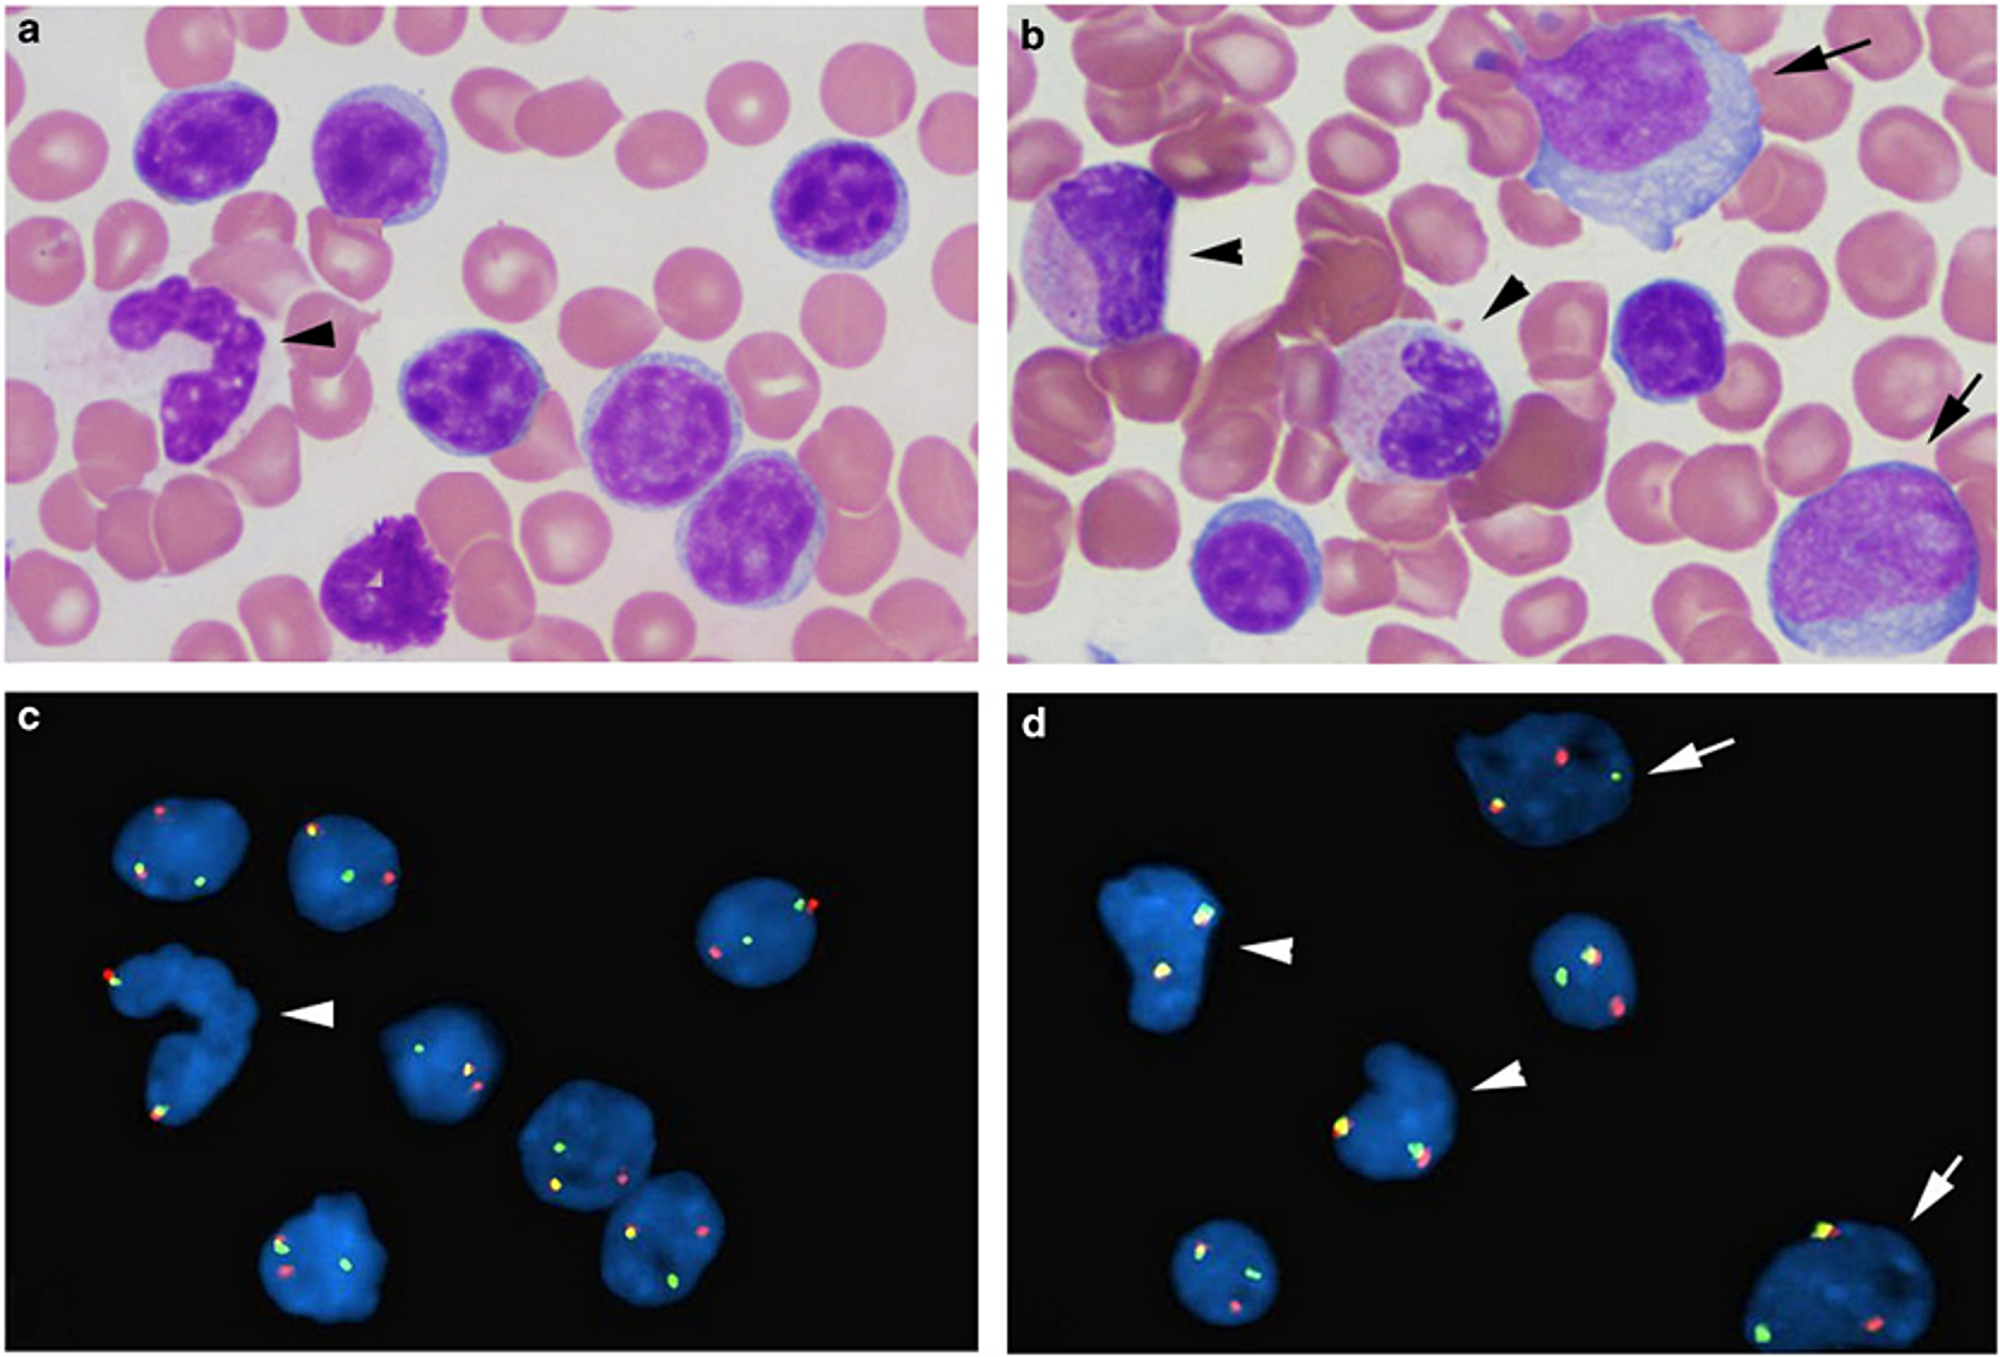 CLLF - Clinical: Chronic Lymphocytic Leukemia (CLL), FISH